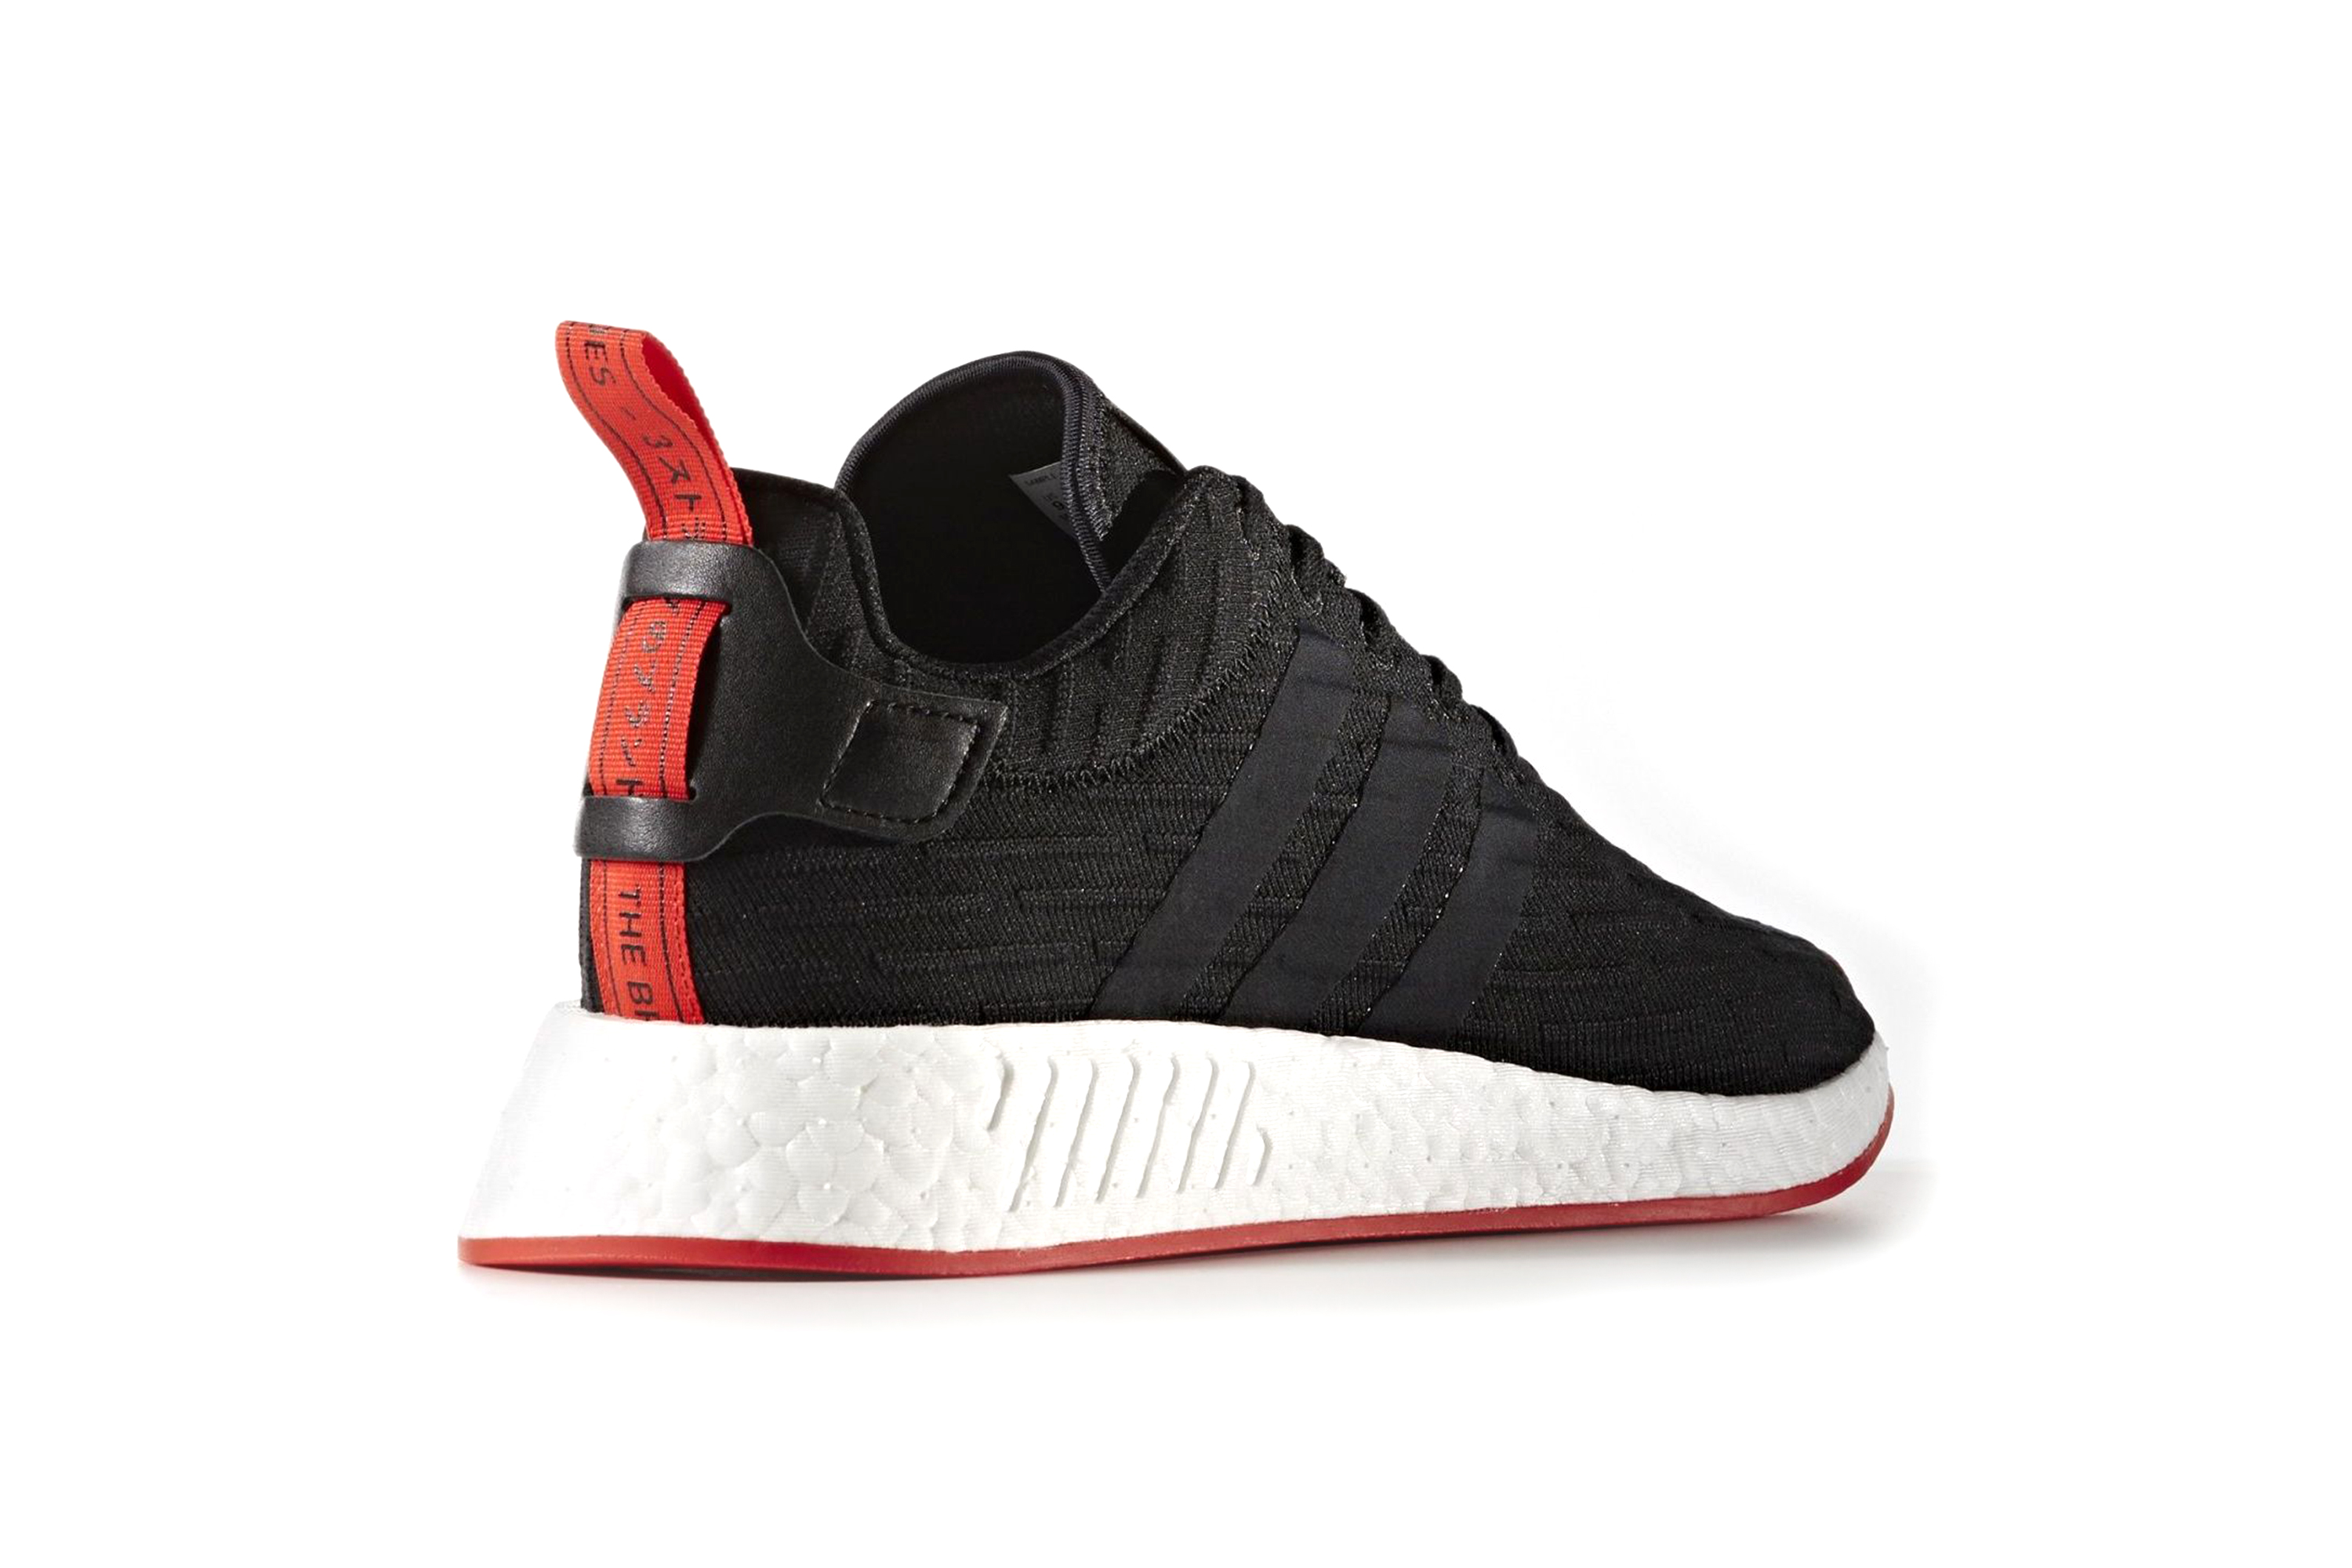 adidas Originals NMD R2 red white black